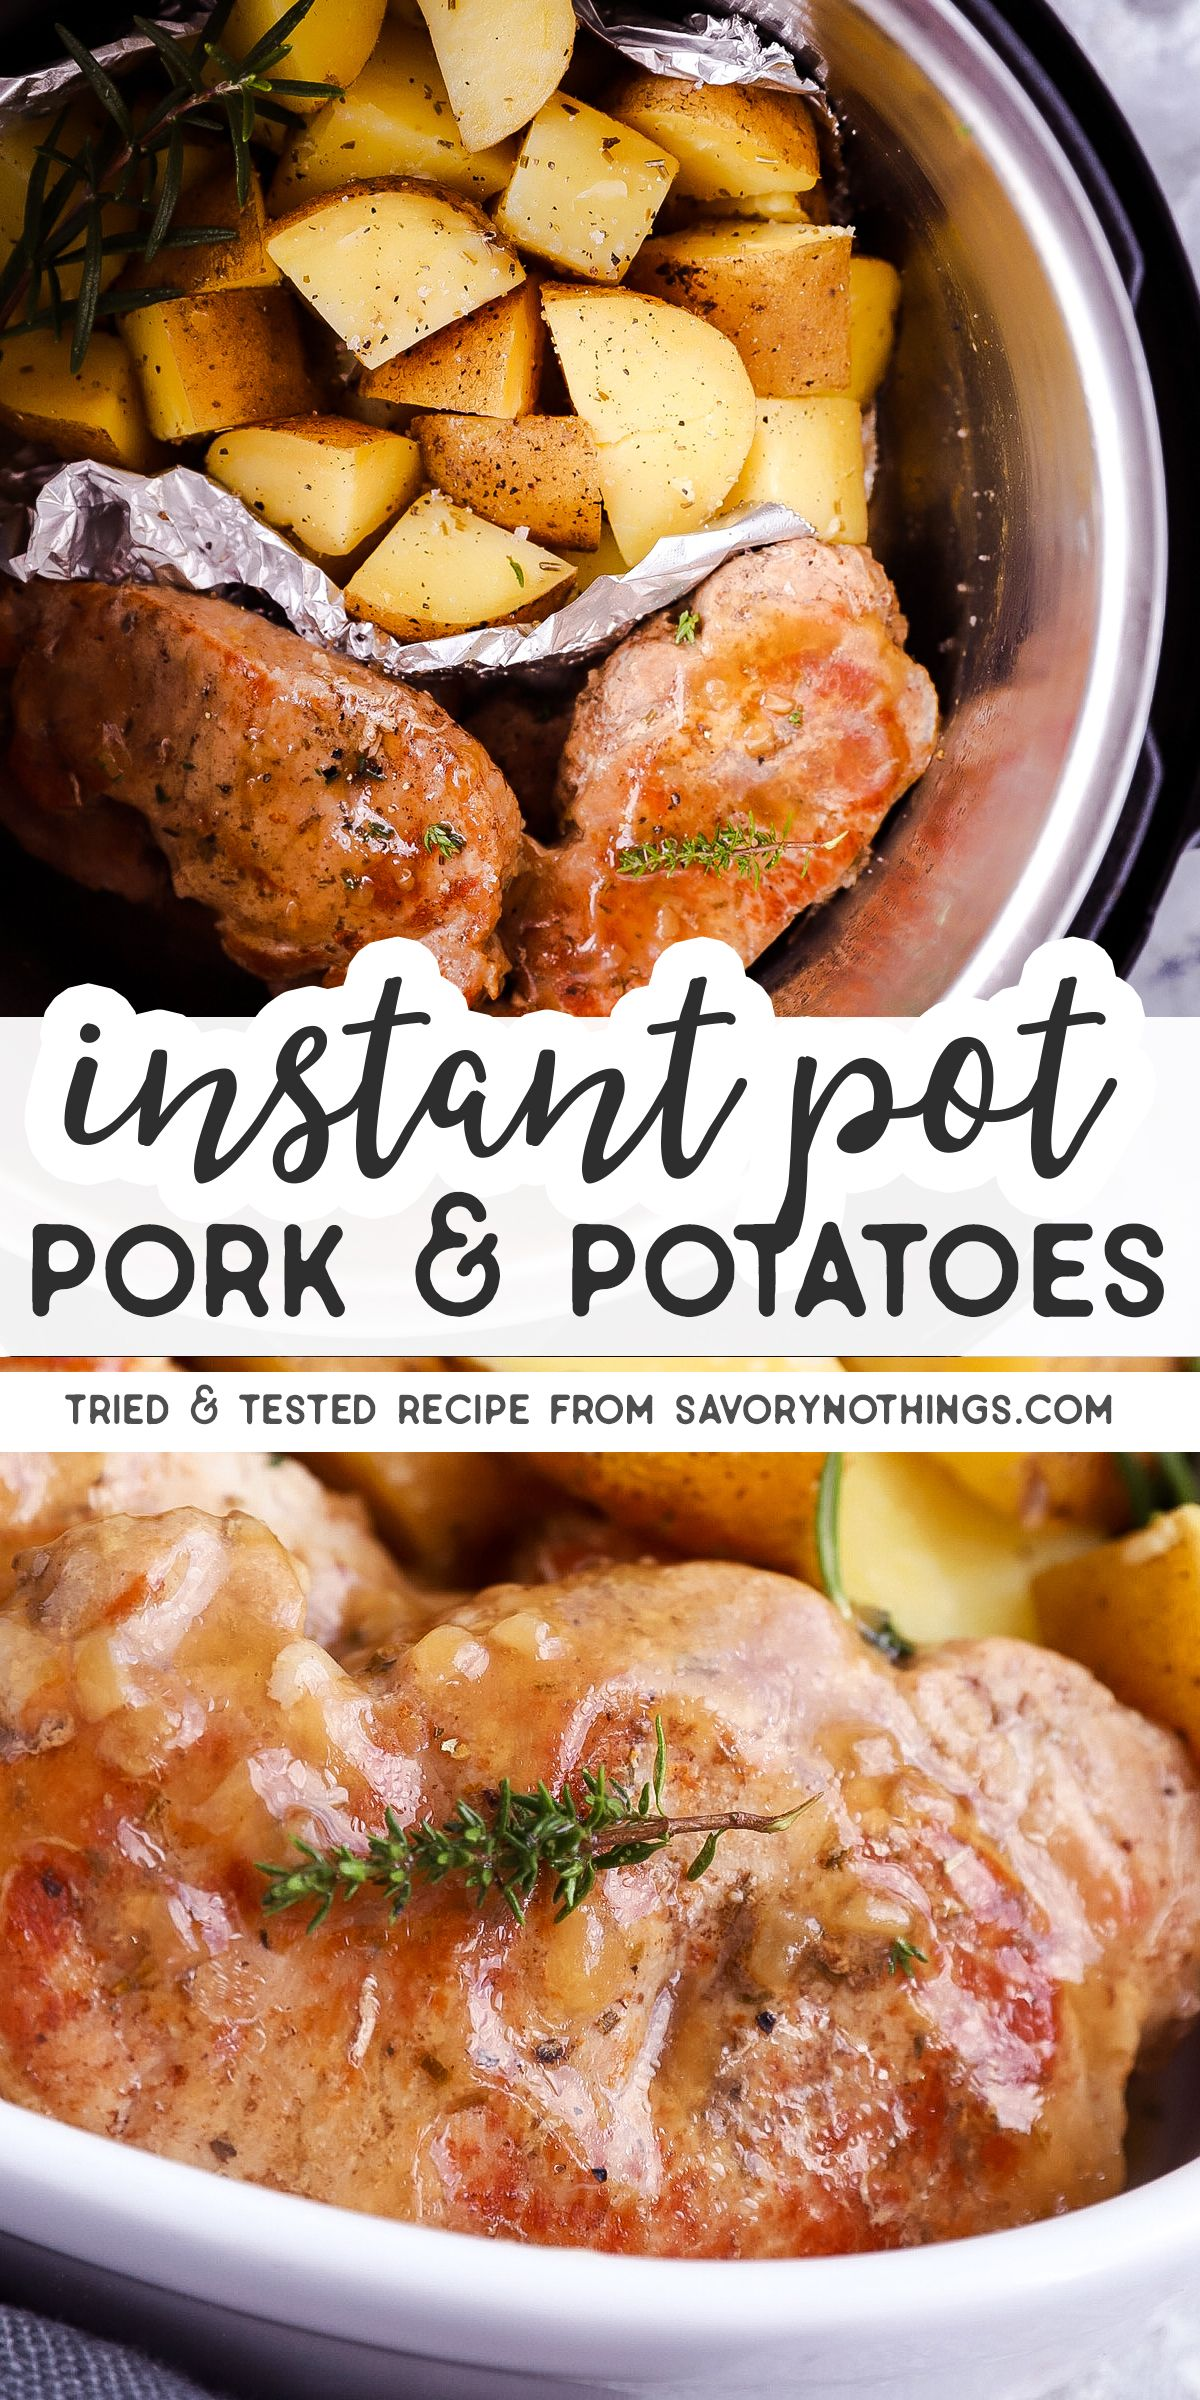 These Instant Pot Pork Chops and Potatoes are a weeknight dinner winner. Ready to serve in under an hour, it's quick and easy to make!  Pork chops, gravy and potatoes come together in the Instant Pot with just a few pantry staples to make a delicious meal. | #instantpot #instantpotrecipes #instantpotporkchops #instantpotmeal #porkchops #porkchops #dinnerrecipes #dinner #dinnerideas #easydinner #easyrecipe